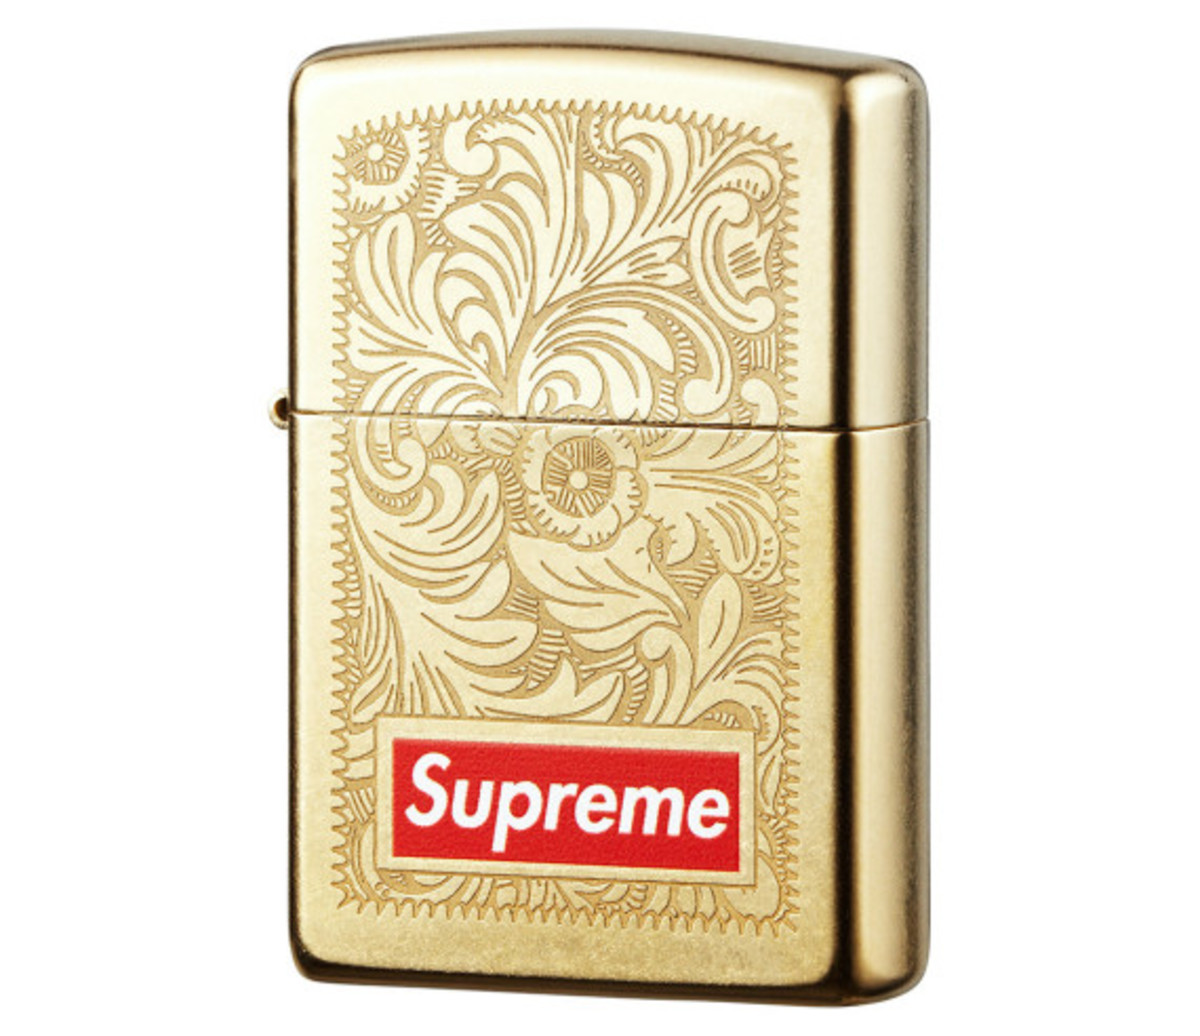 supreme-fall-winter-2014-accessories-and-gear-collection-06